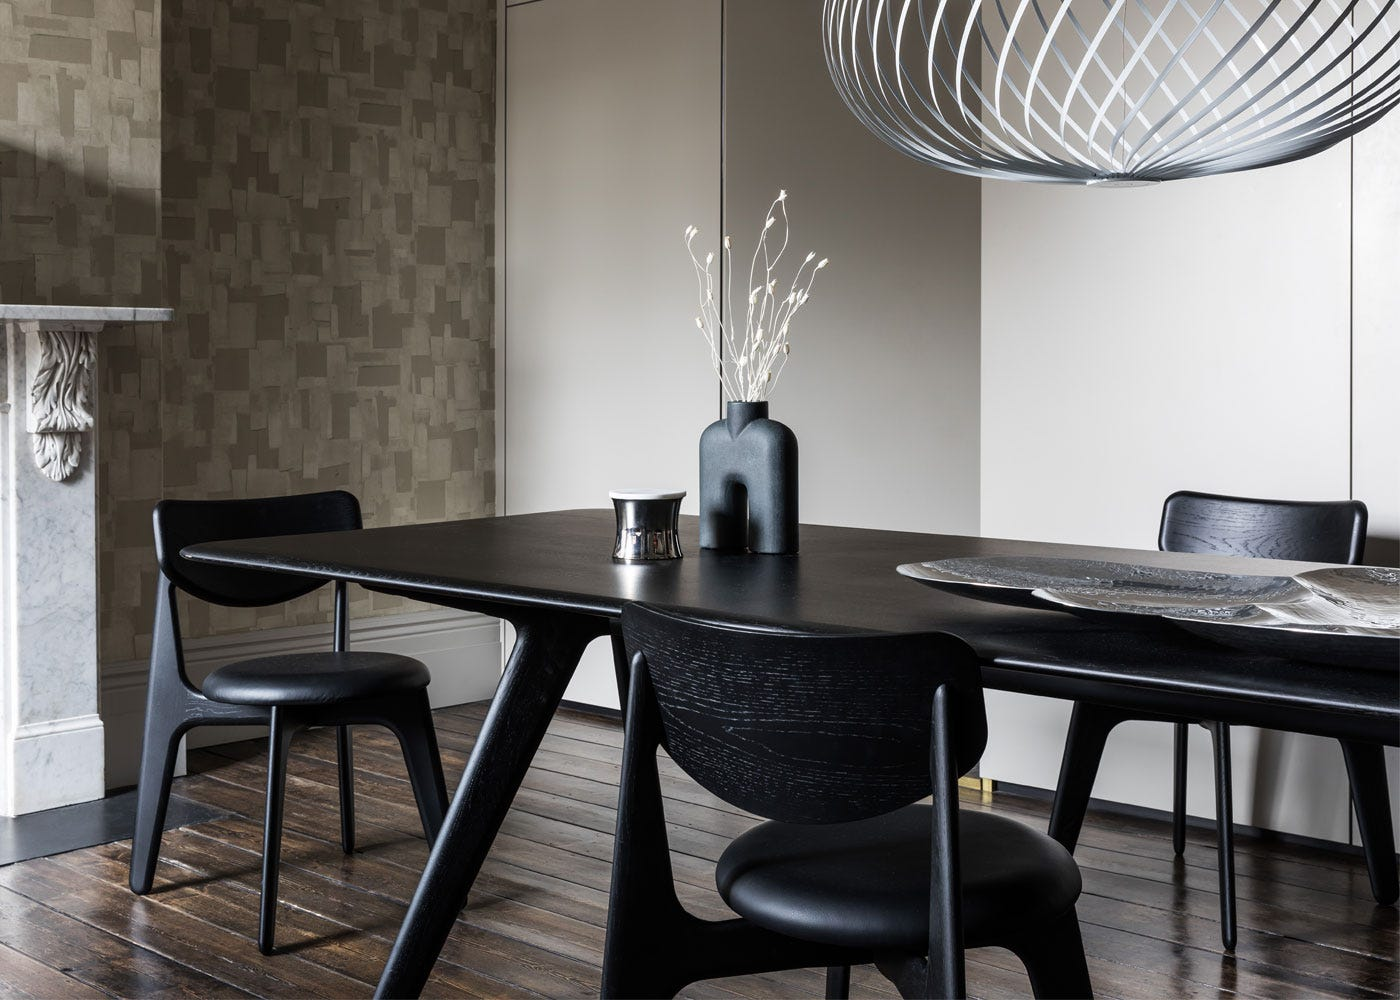 Slab dining table & chairs